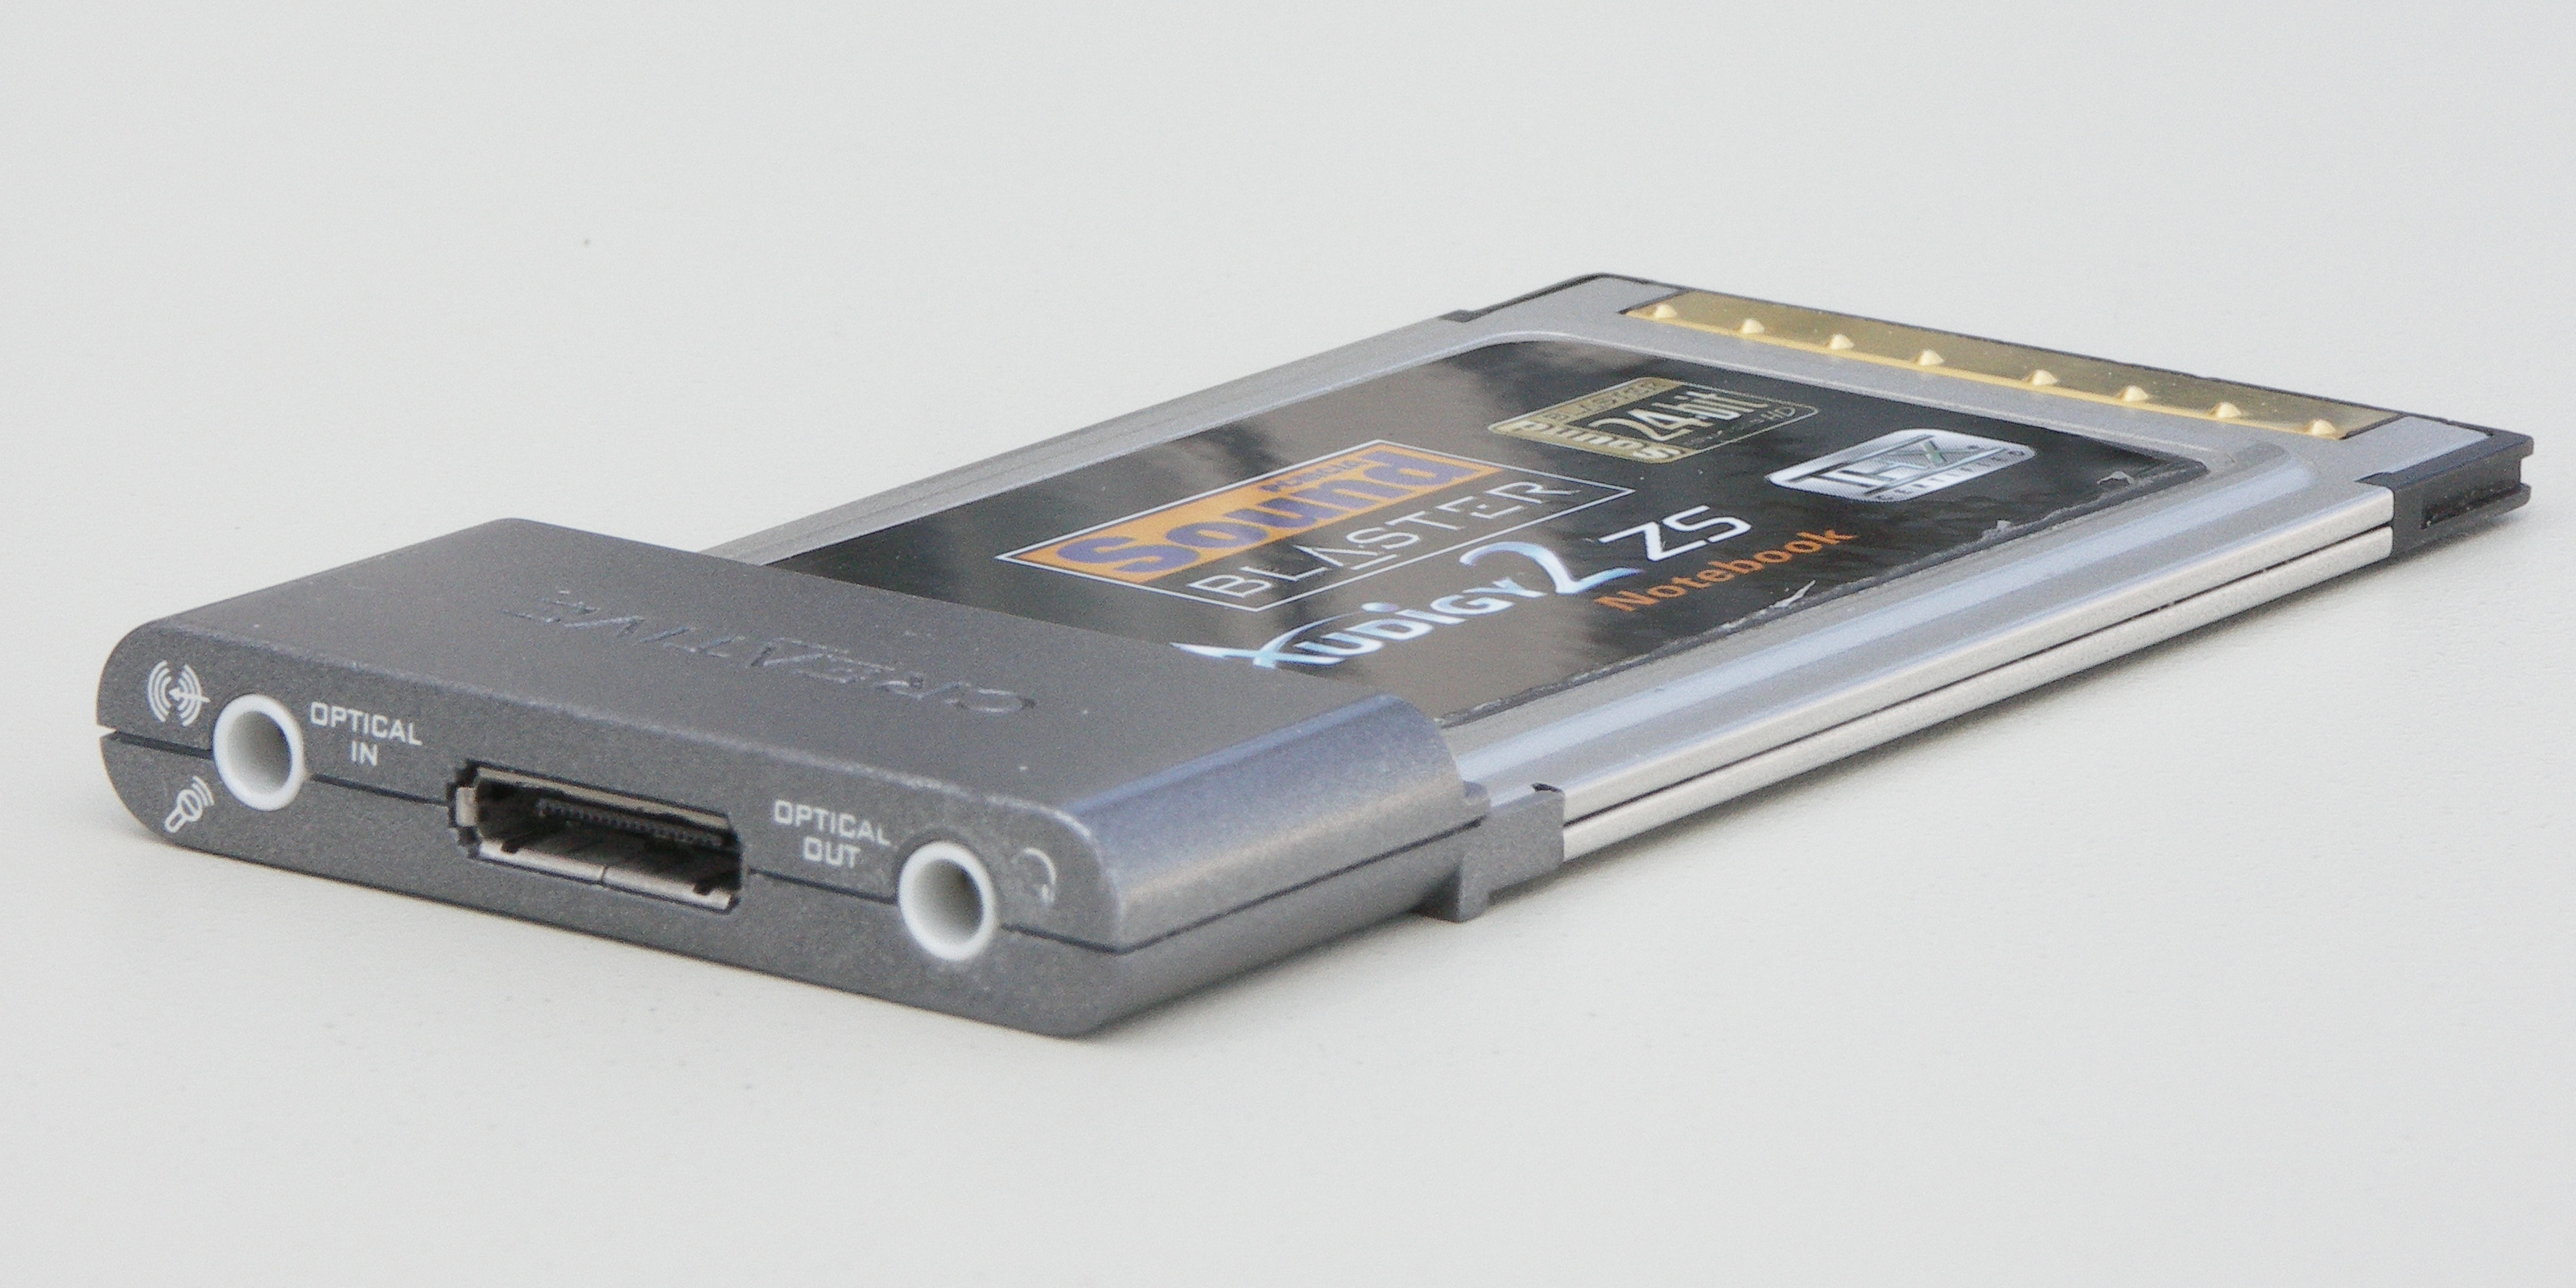 Creative Sound Blaster Audigy 2 ZS Notebook PCMCIA Windows 8